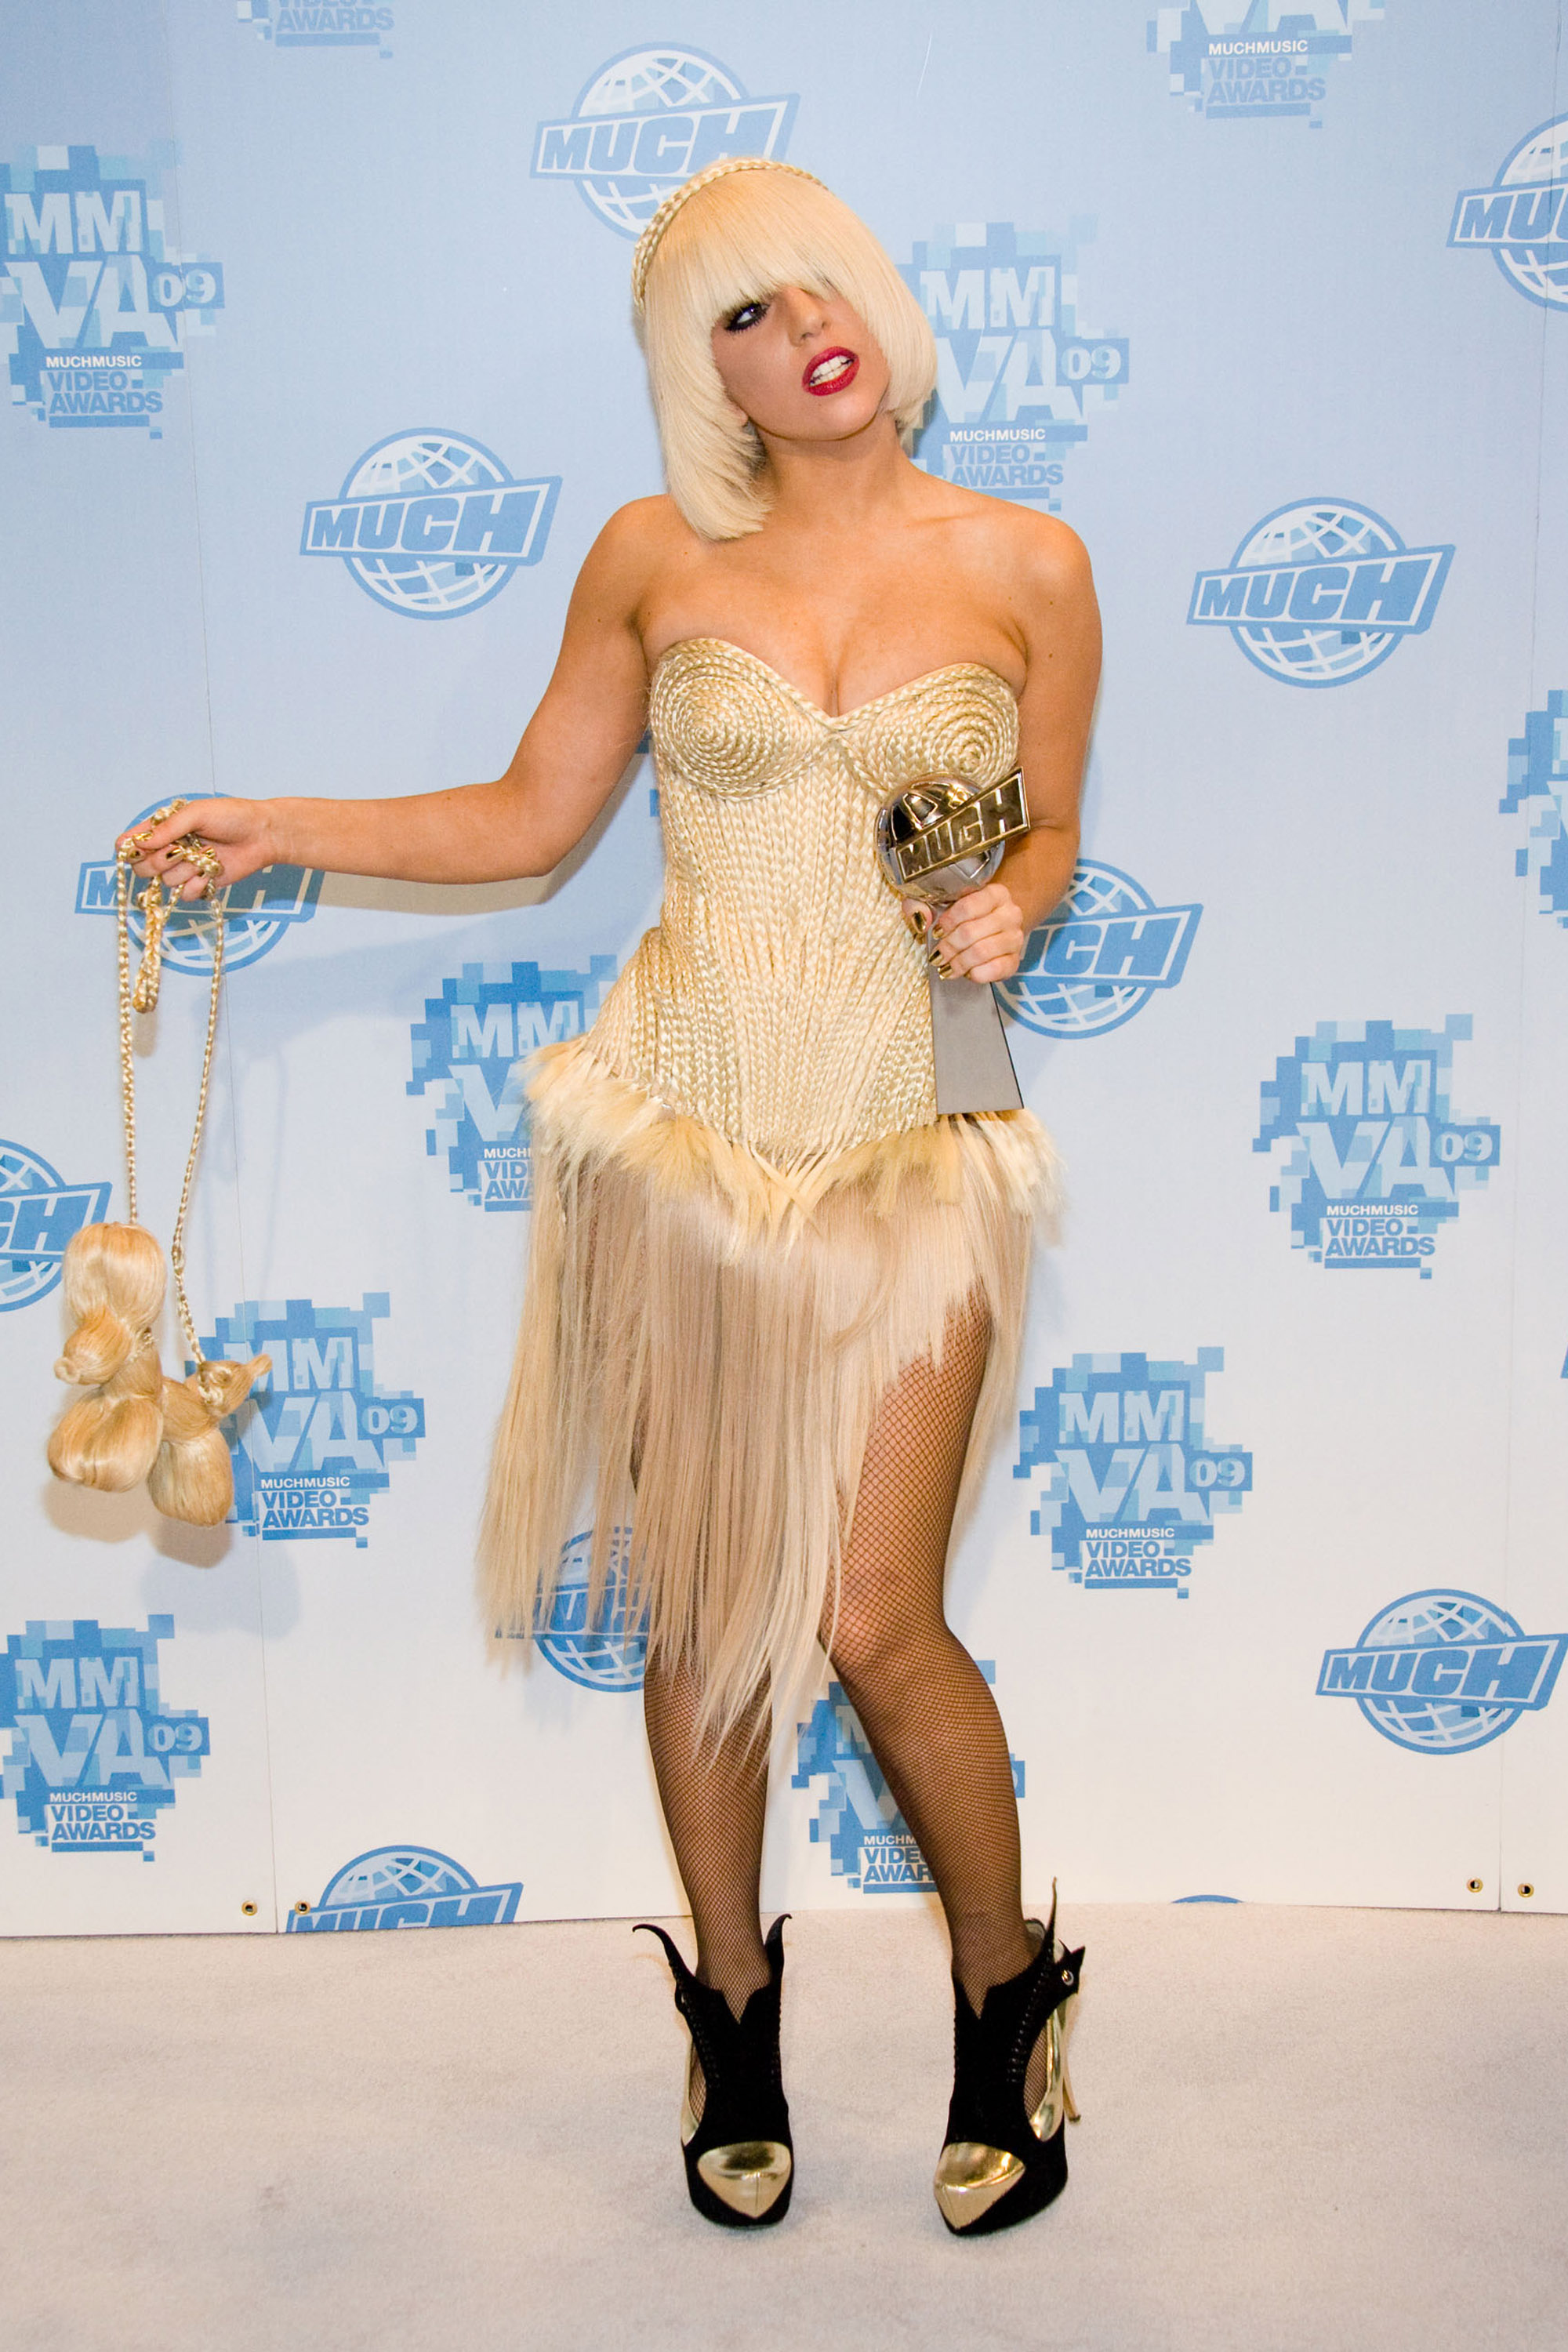 TORONTO, ON - JUNE 21:  Lady Gaga attends the press room at the 20th Annual MuchMusic Video Awards at the MuchMusic HQ on June 21, 2009 in Toronto, Canada.  (Photo by George Pimentel/WireImage)